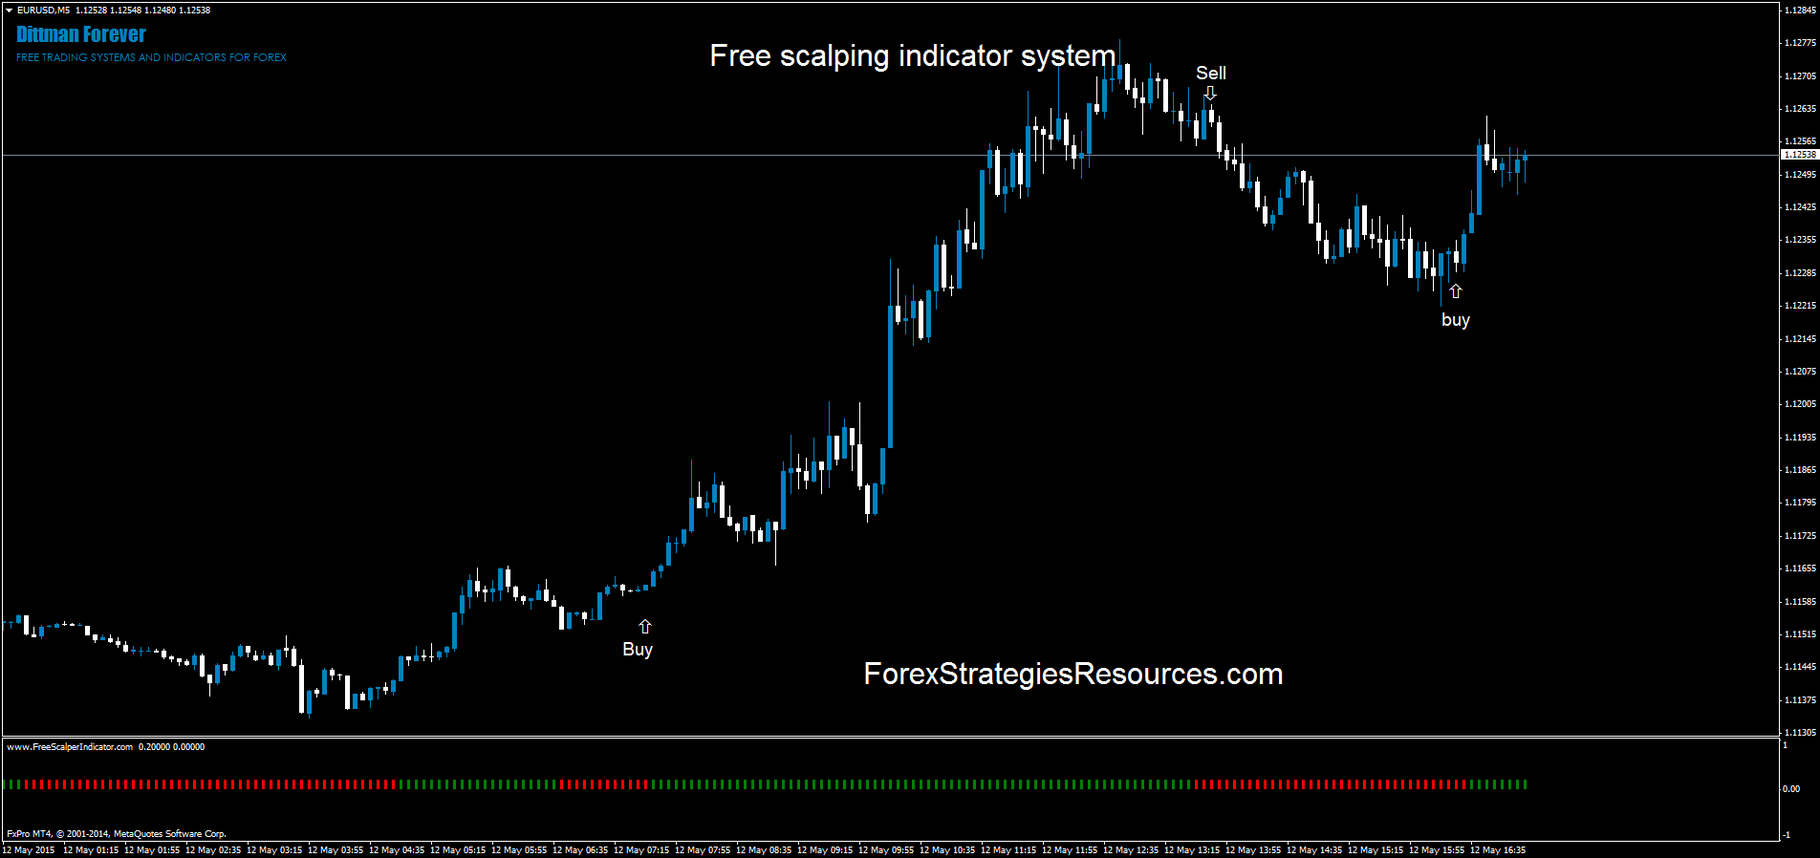 Free scalping indicator system - Forex Strategies - Forex Resources - Forex Trading-free forex ...